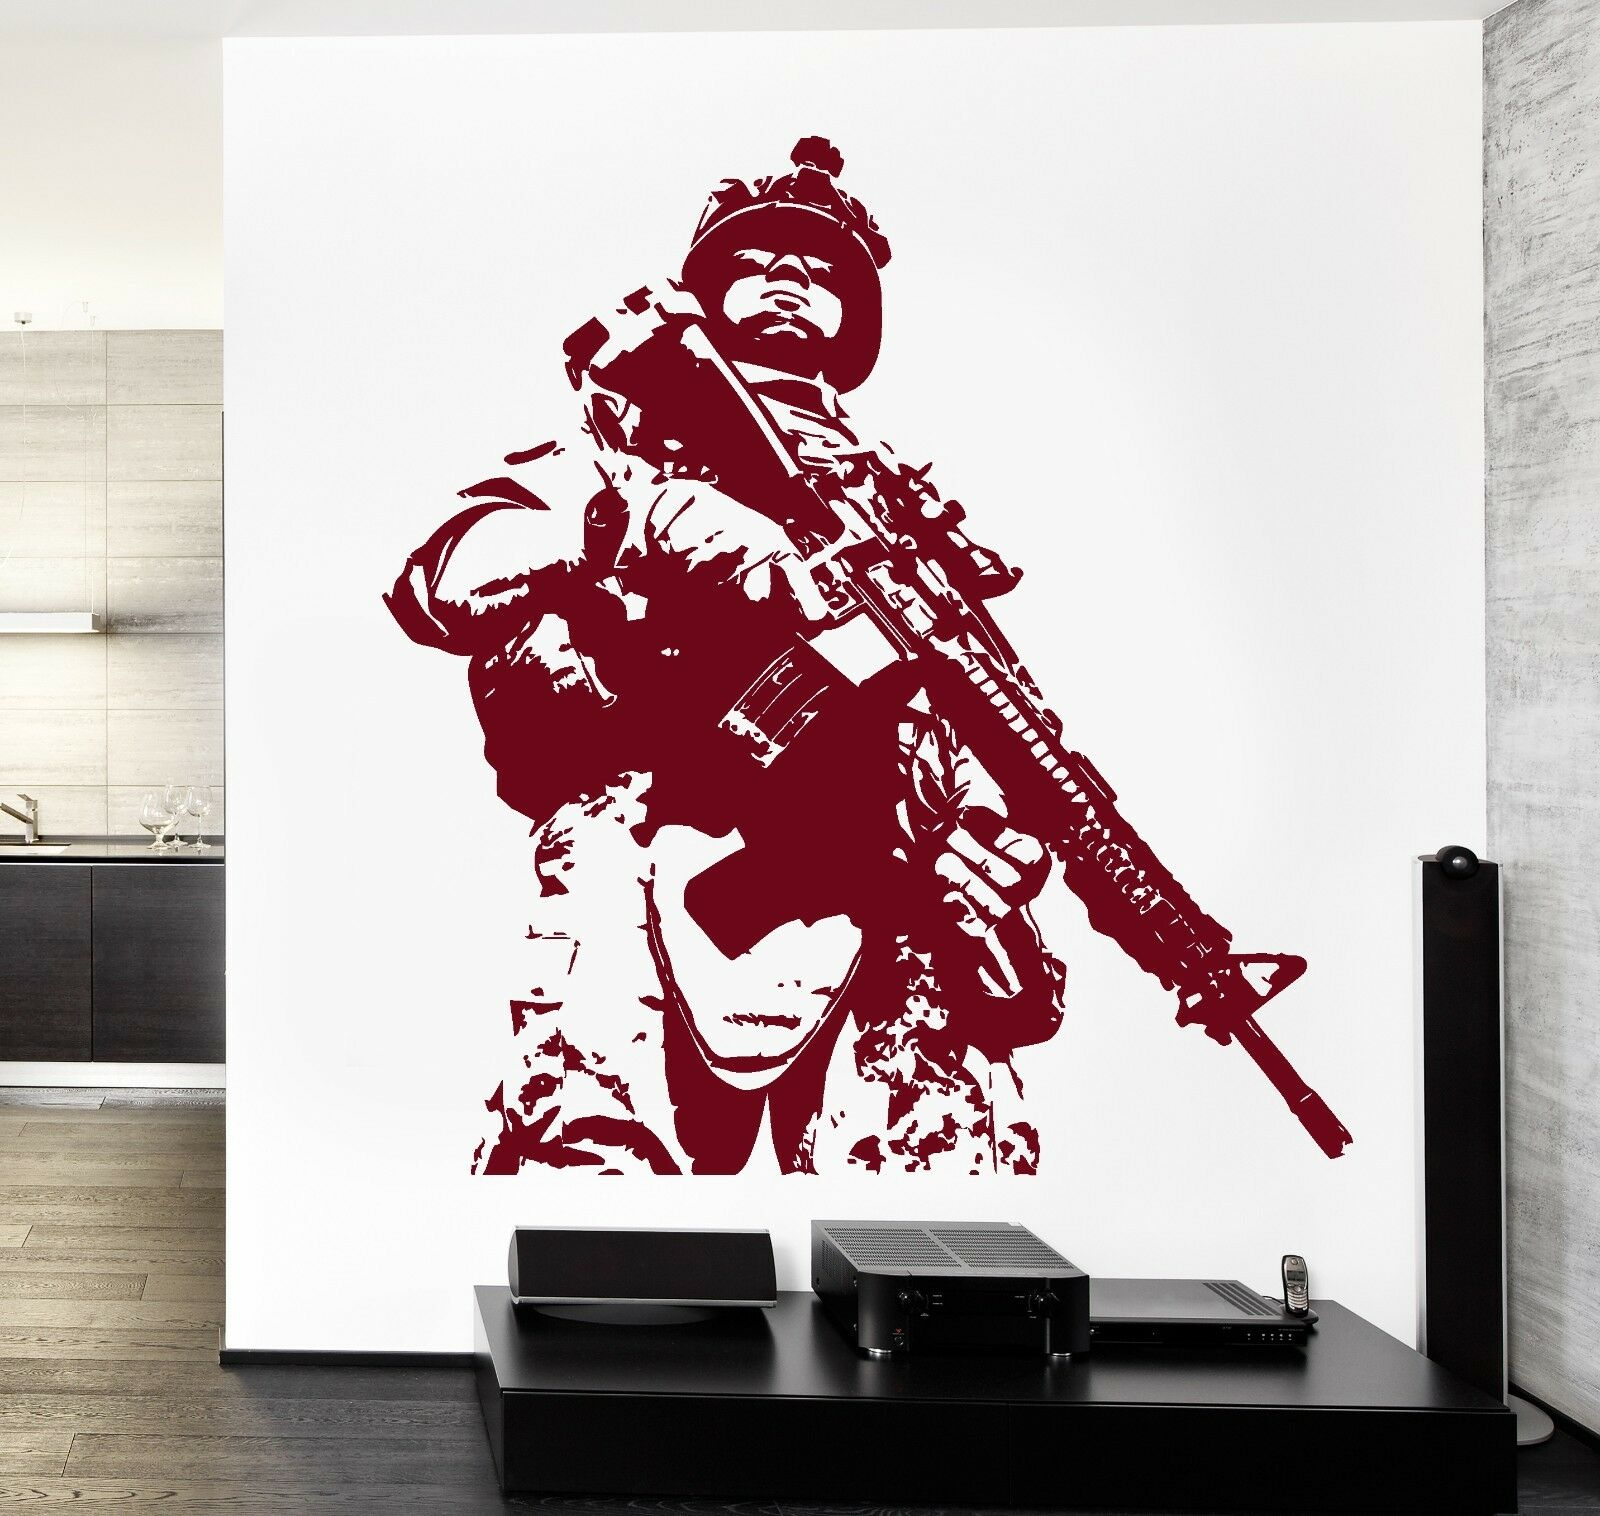 Wand Vinyl US Soldier Marine Army Military Guaranteed Quality Decal (z3428)